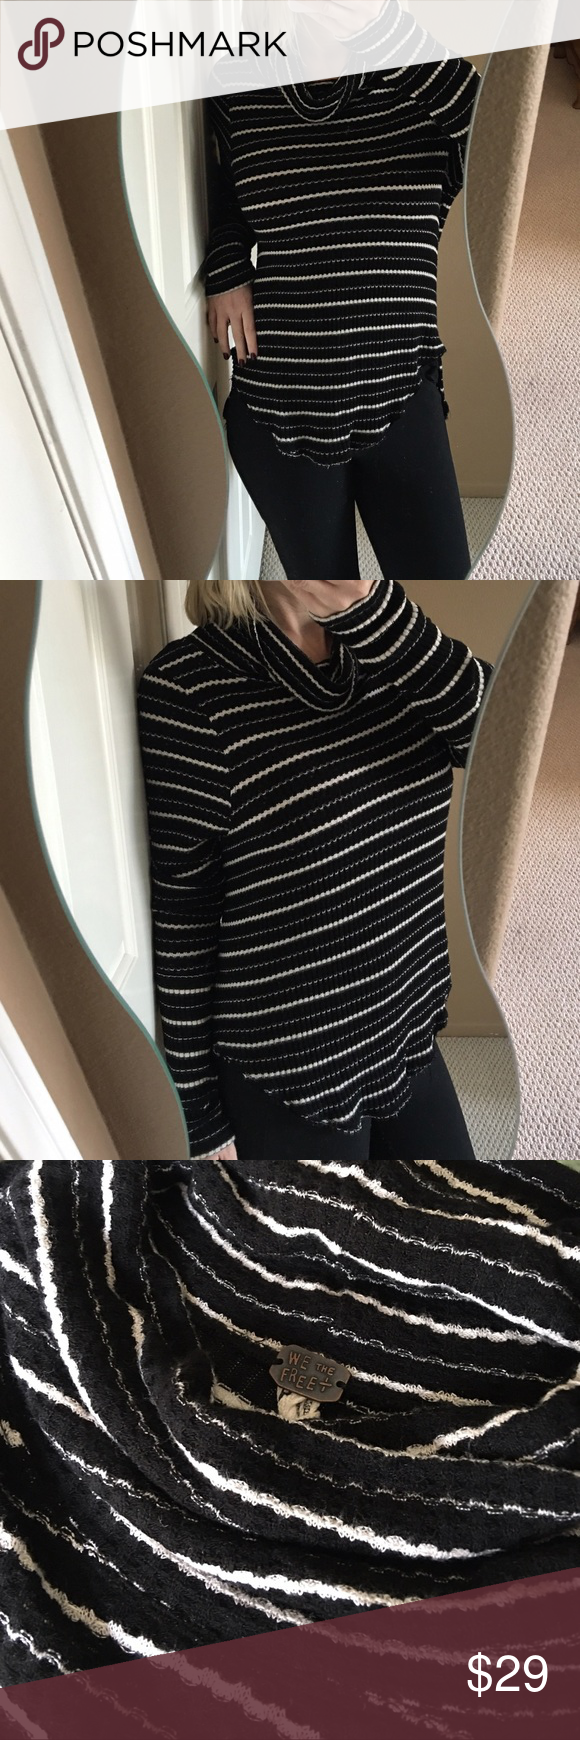 ✨We The Free Cowlneck Thermal Long Sleeved Top✨ Super cute, comfy, and chic We the Free by Free People thermal top! Ultra soft material so it feels amazing on! Black and white striped, Rayon/viscose/spandex blend so there's nice stretch to it. Falls a little lower in back. Cowlneck style. In fabulous condition! ❤️ Free People Tops